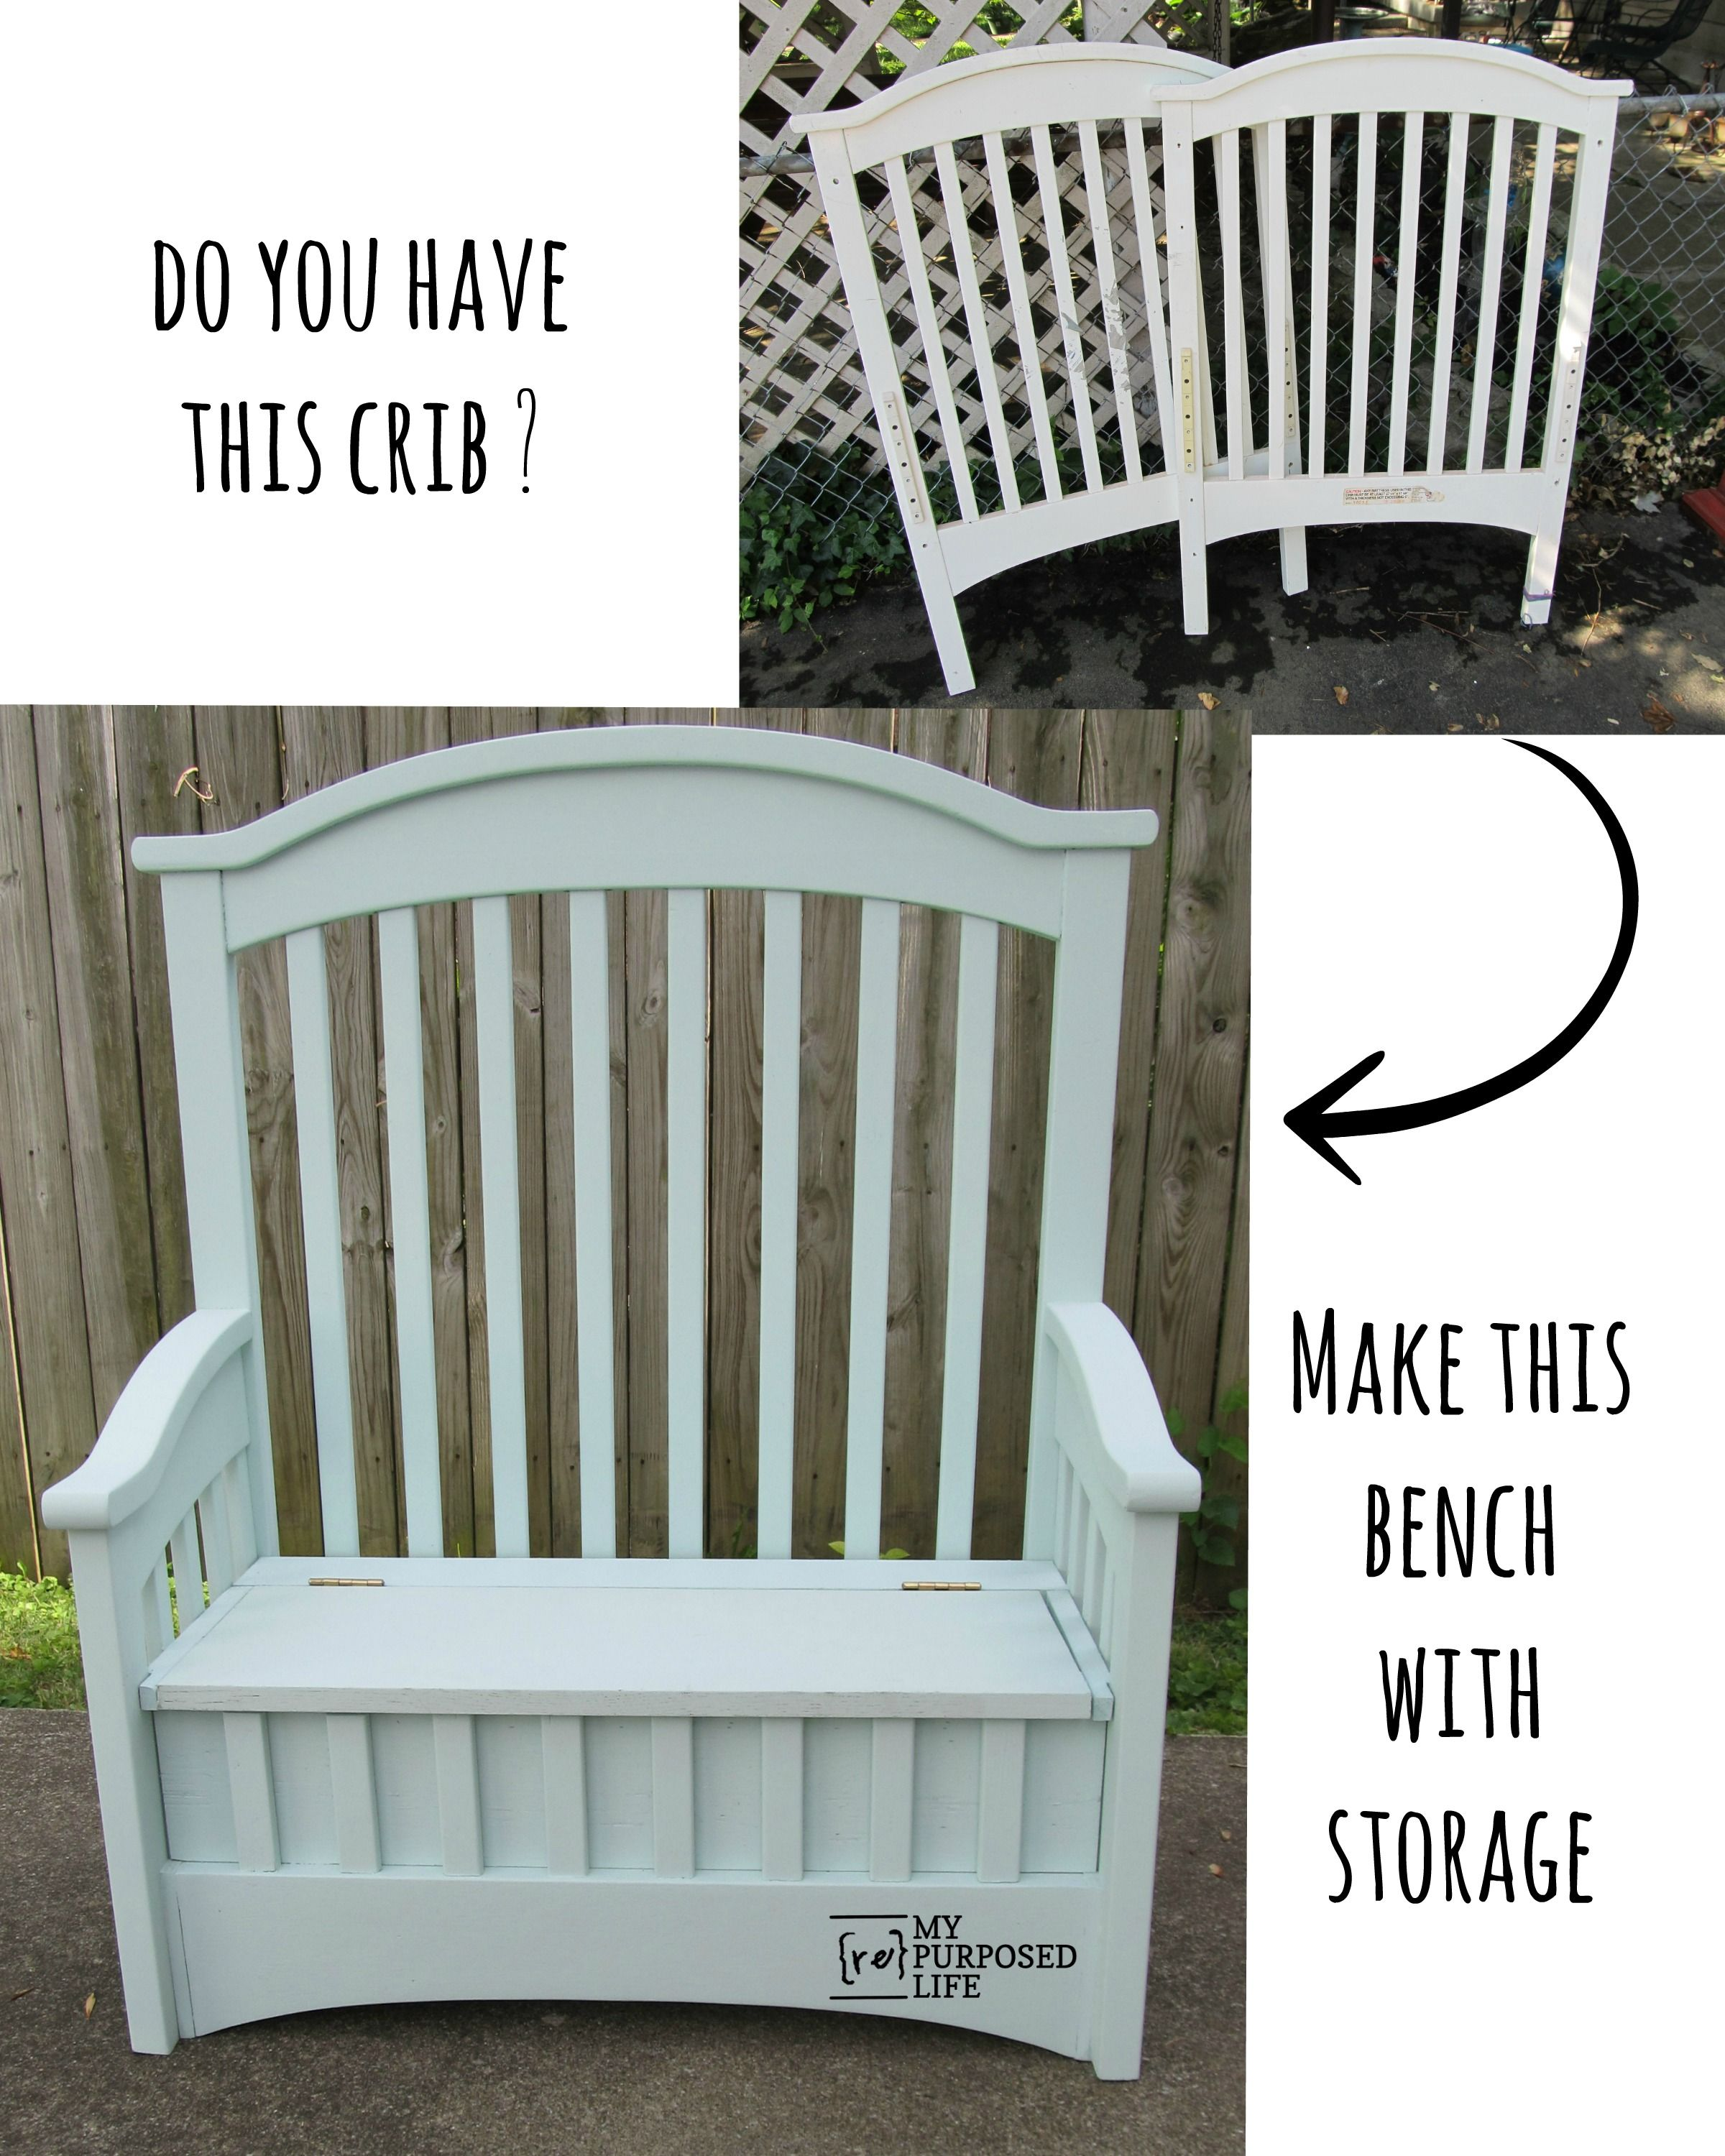 Upcycled Crib into Toy Box Bench Diy furniture